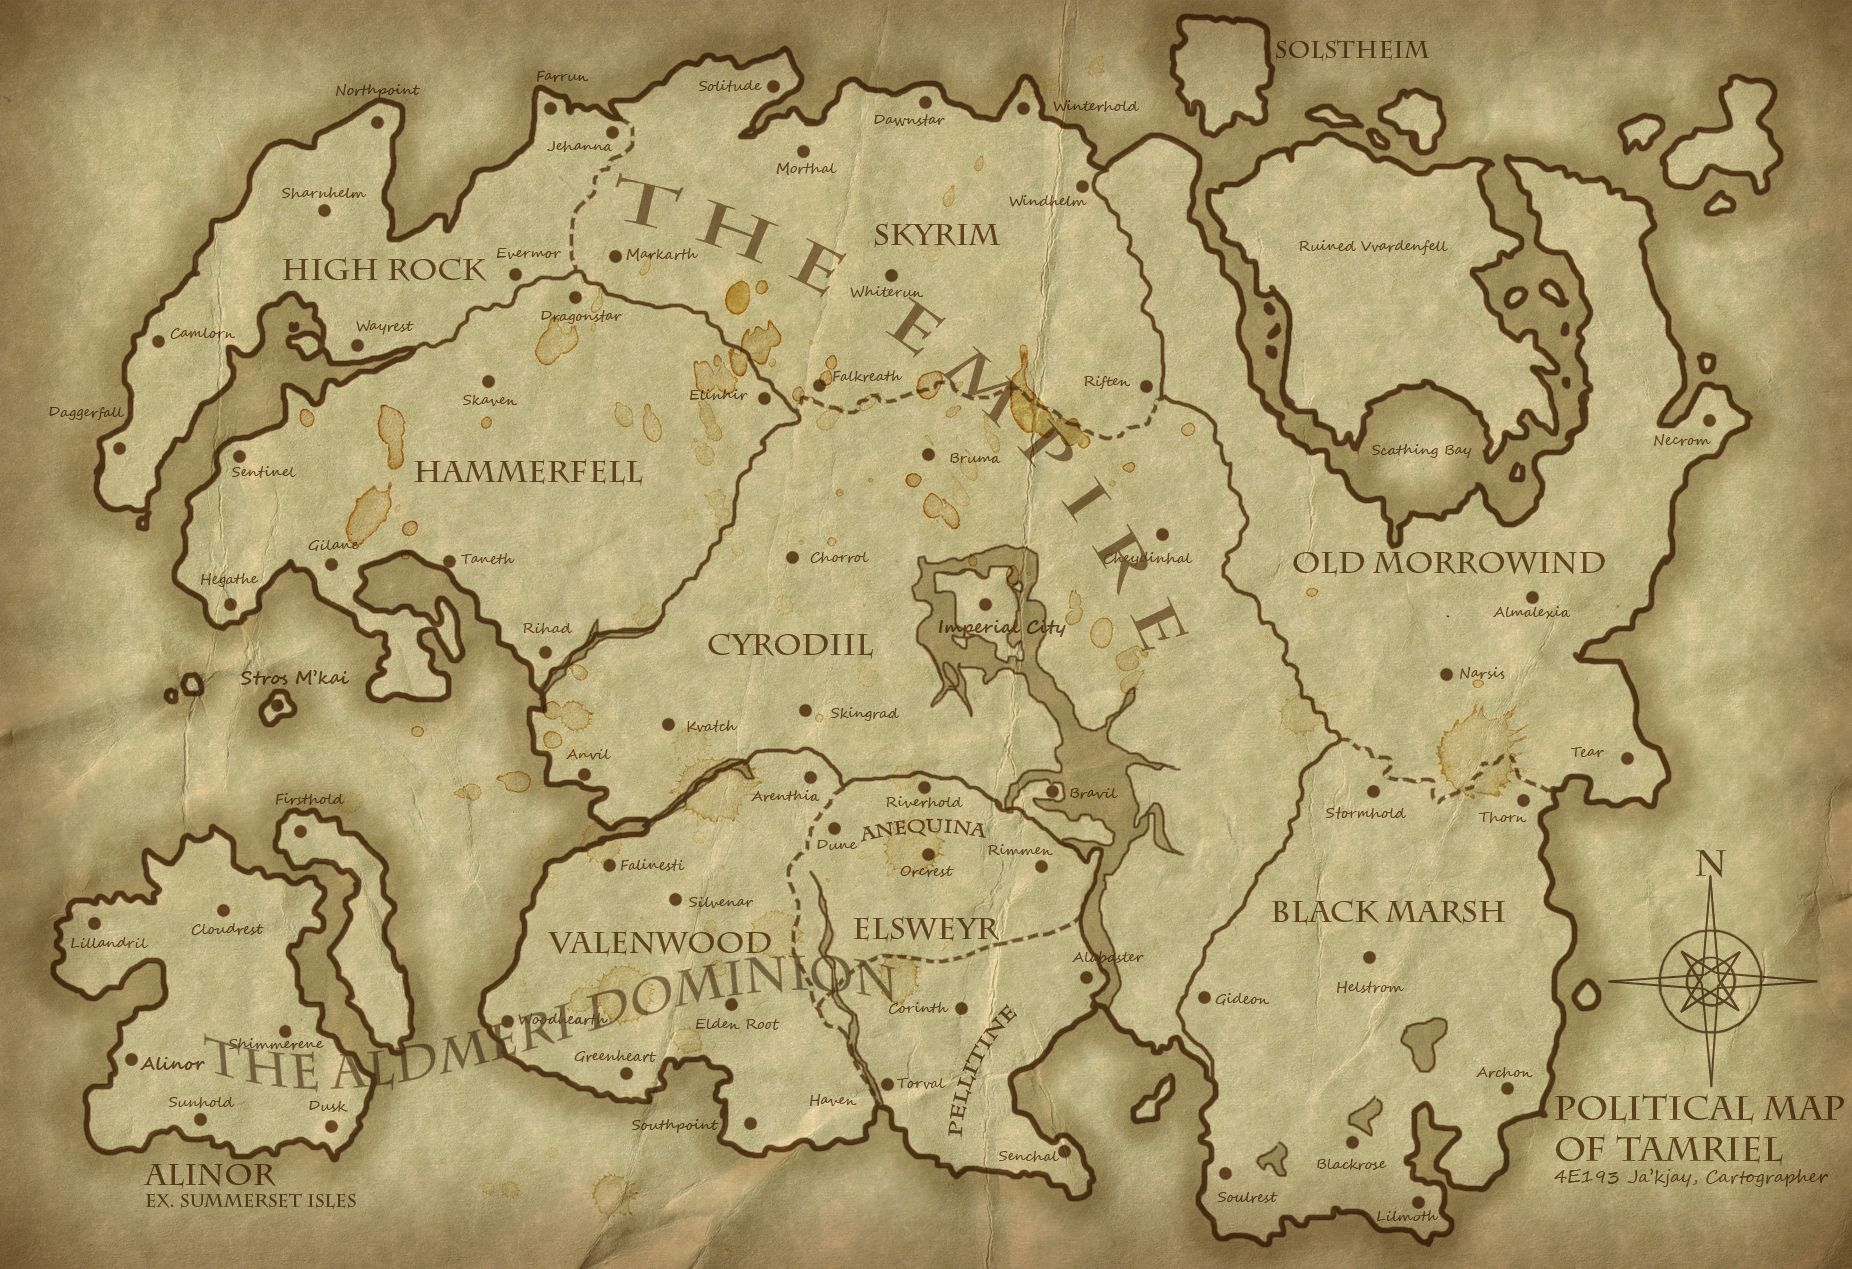 A Map Of All Of Tamriel | Political Map of Tamriel 4E193 - Revised ...